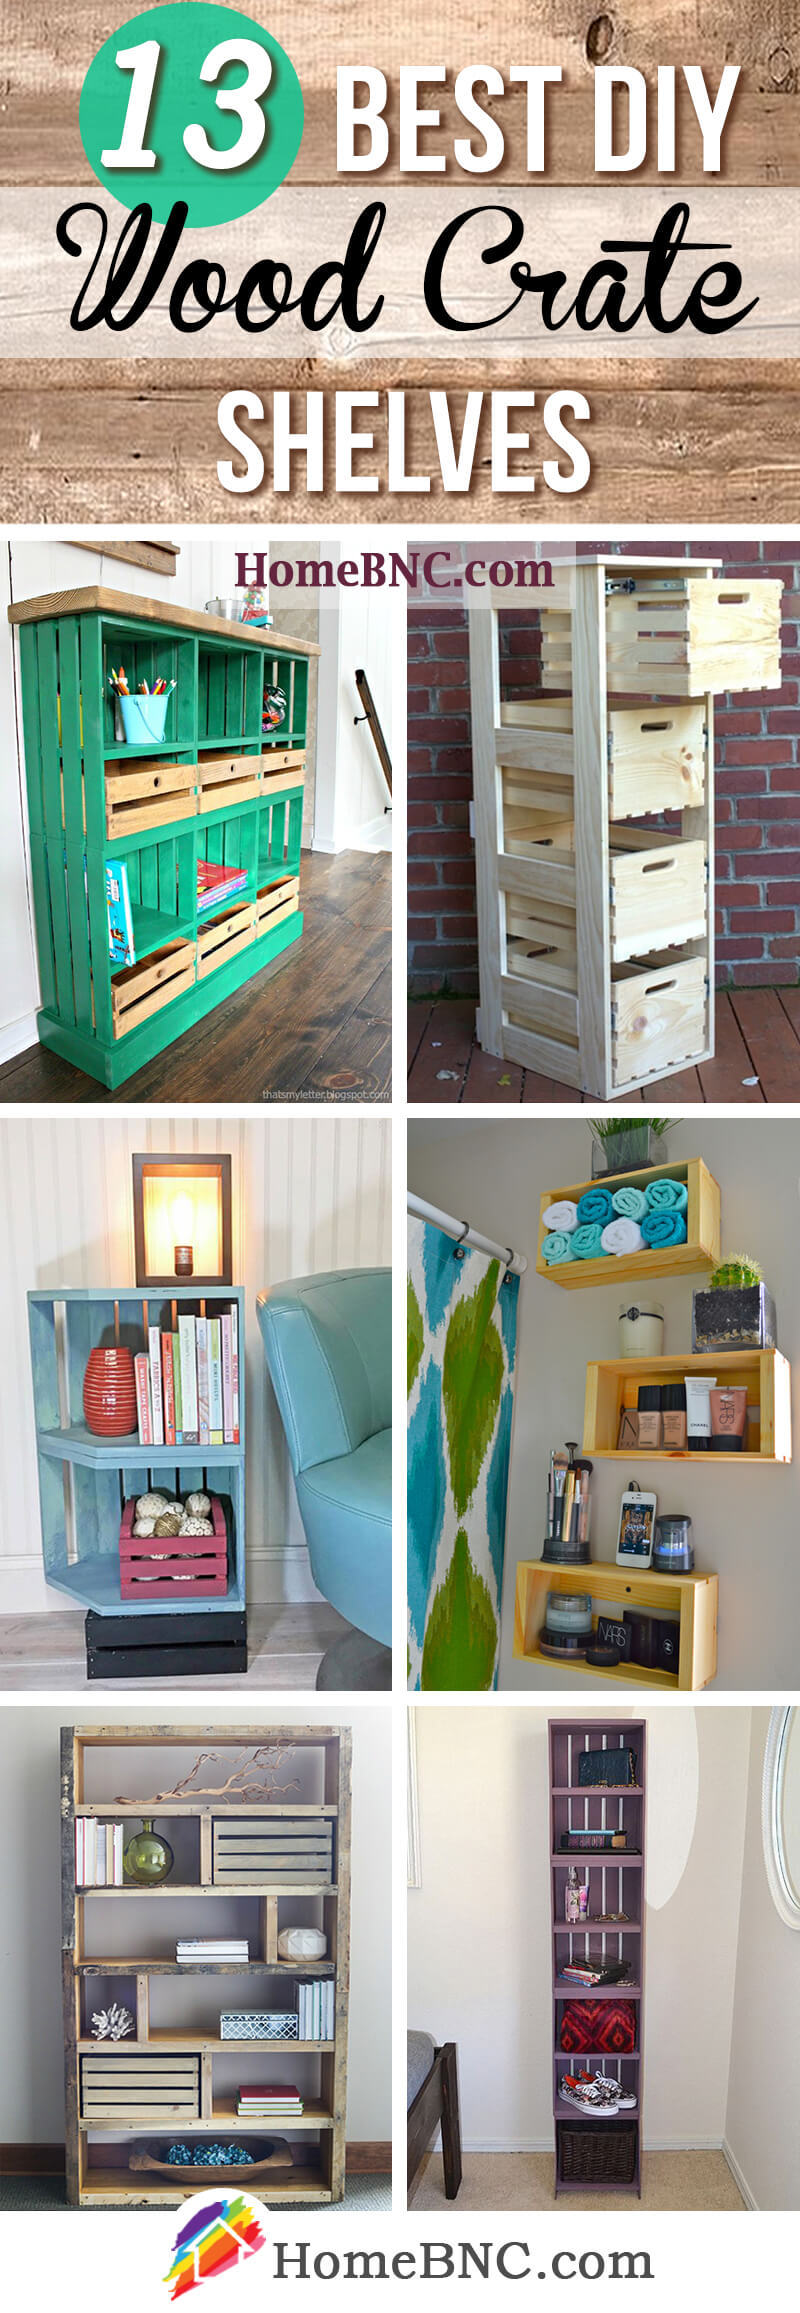 13 Practical DIY Wood Crate Shelves To Add Functionality Your Space